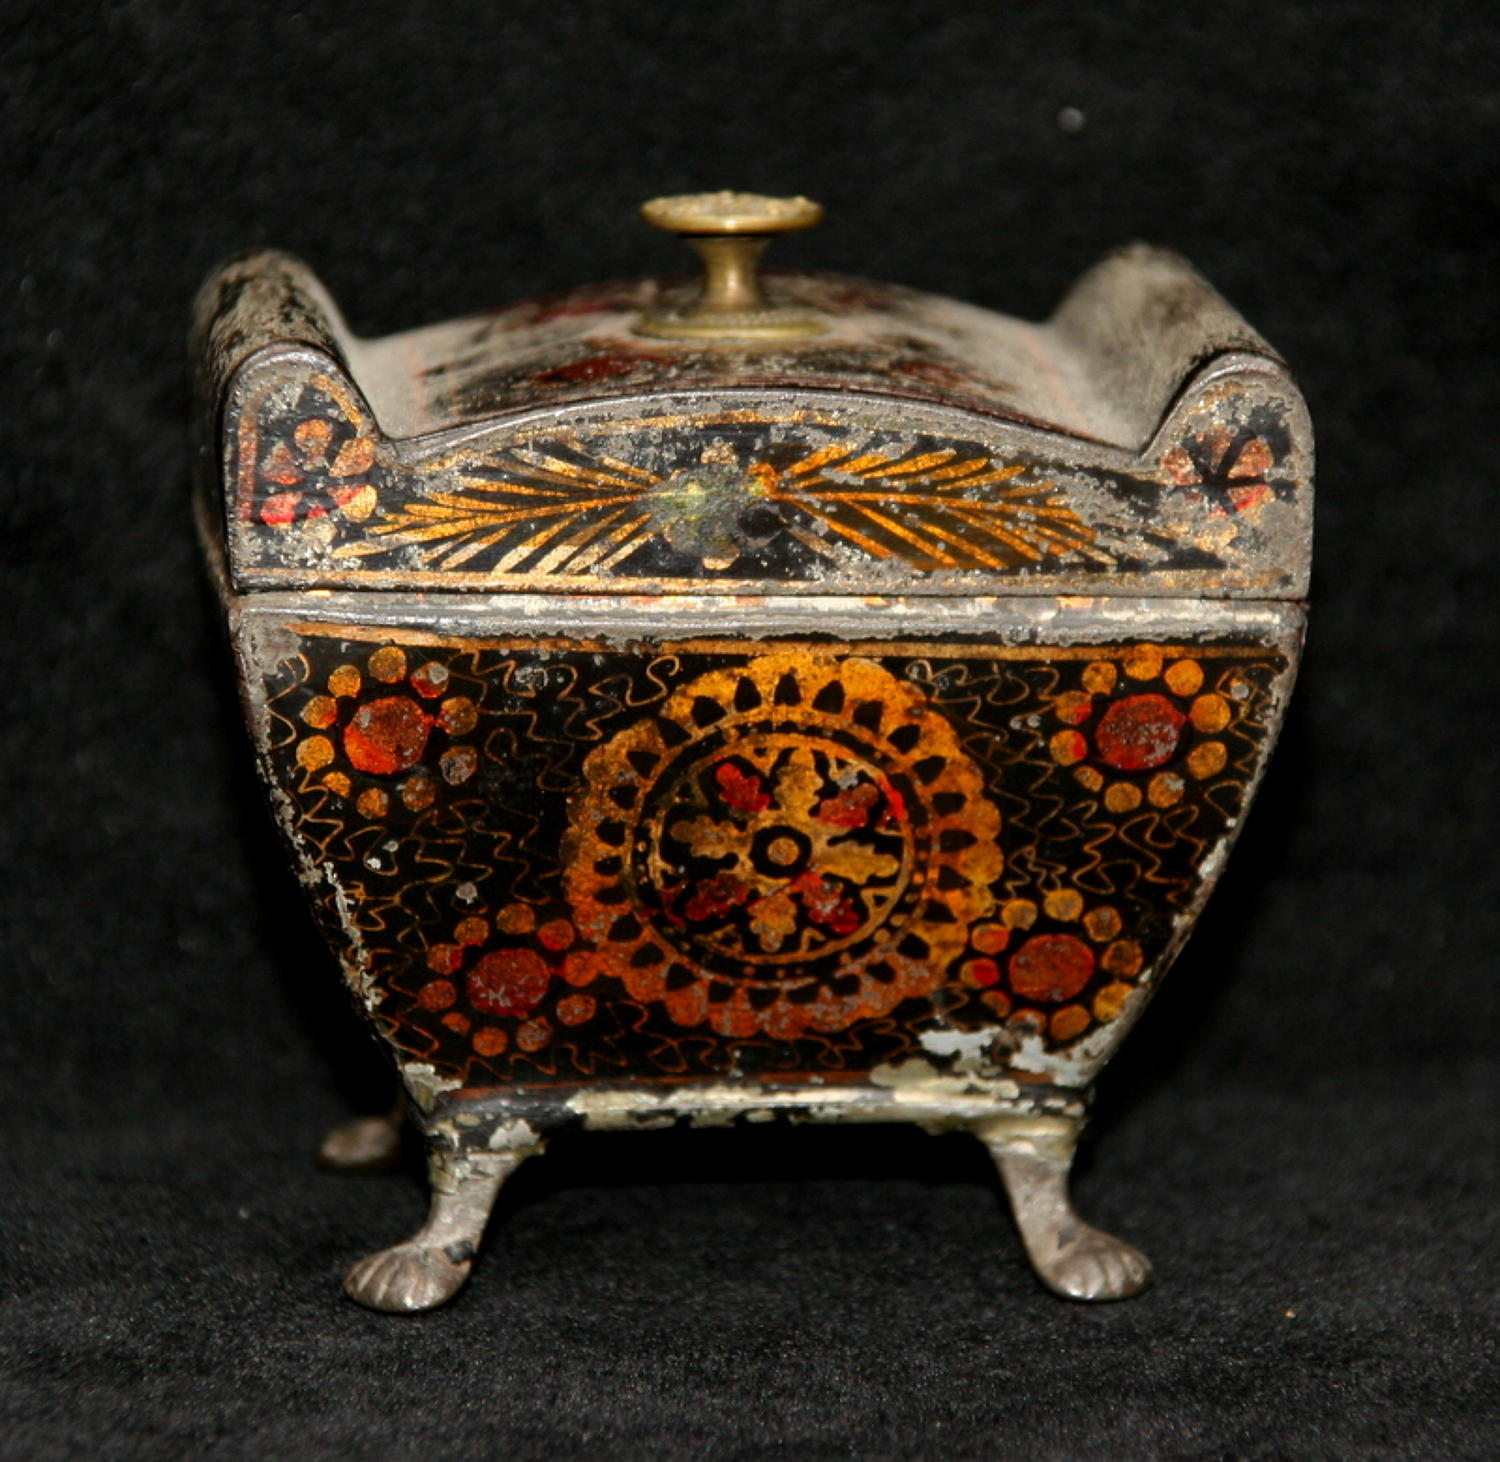 Tole Tea Caddy, Early 19th century